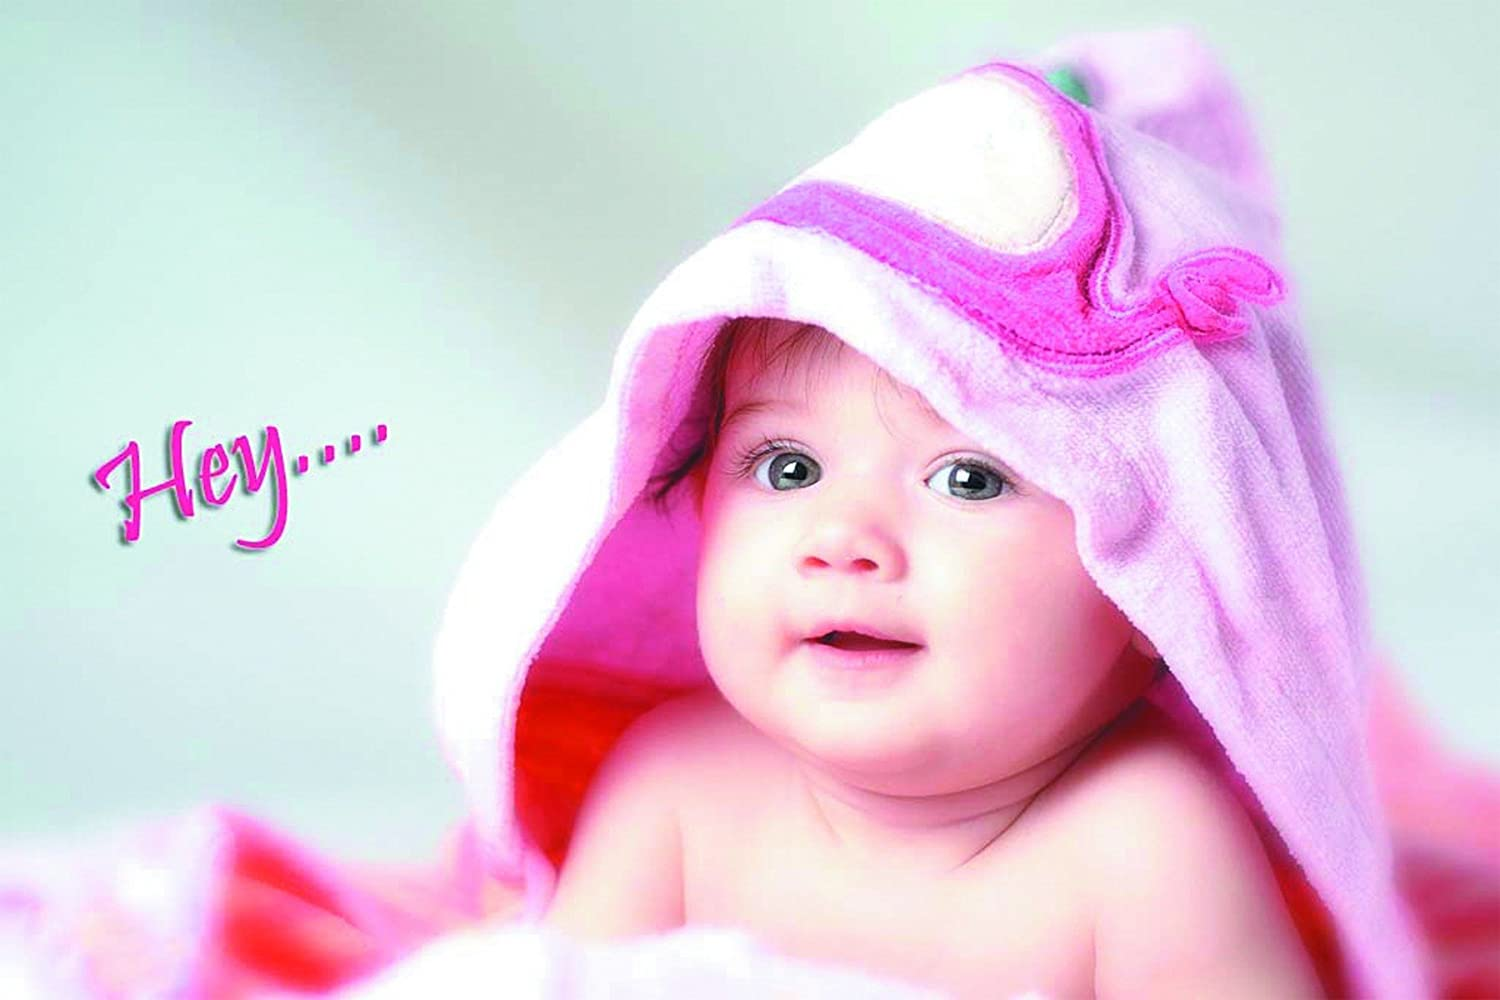 Poster king baby love baby in pink hat poster multicolour 12 x 18 amazon in home kitchen